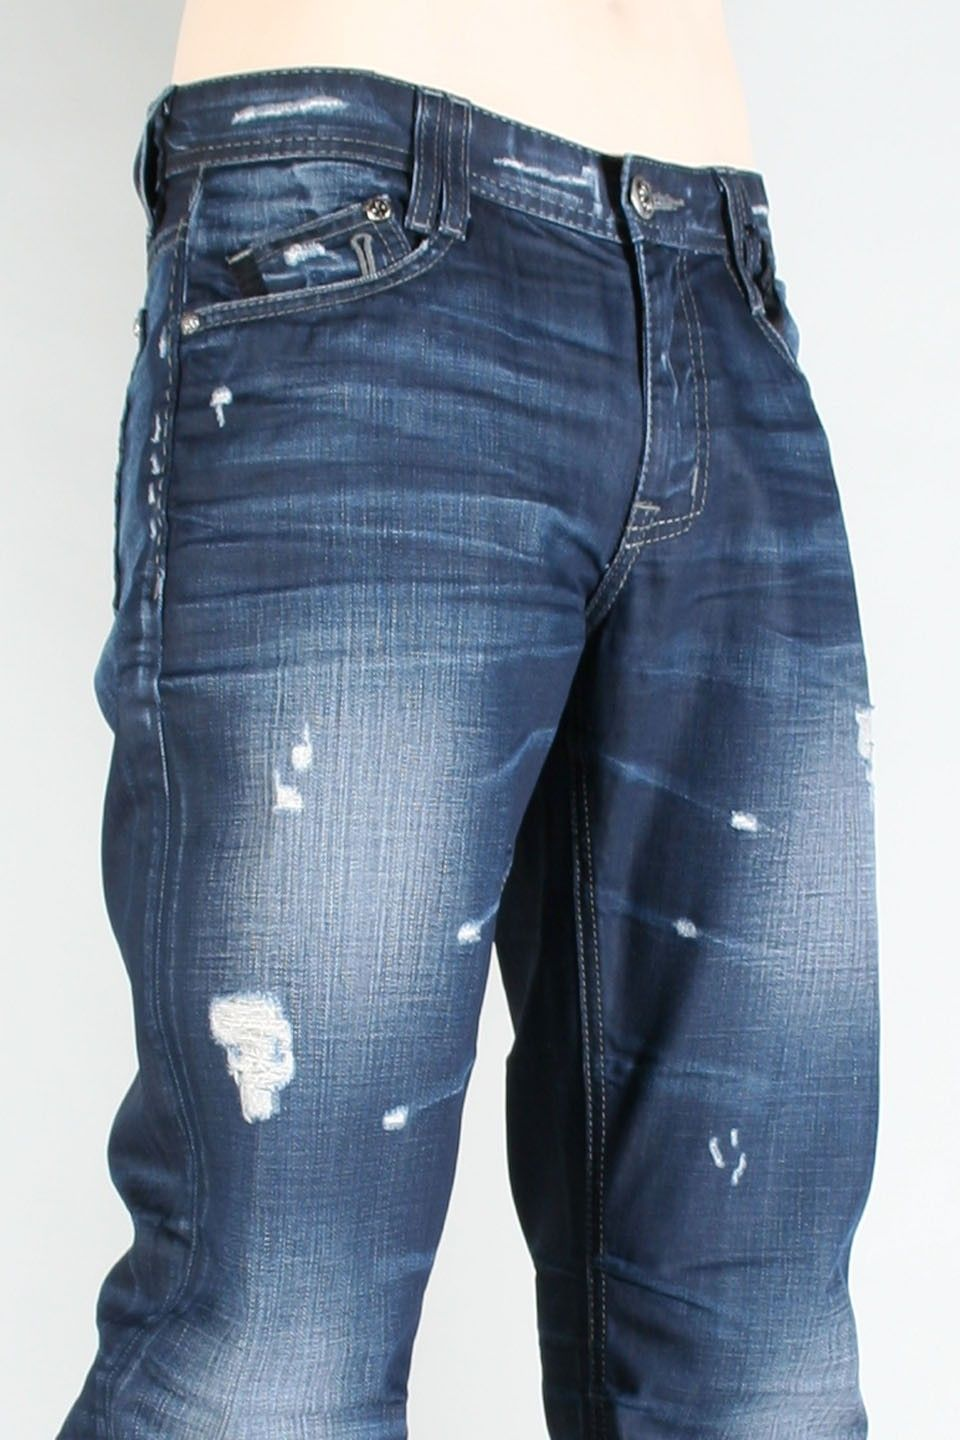 Affliction® Indigo Clothing Mens Boot Cut Low Rise Jeans    Awesome Affliction jean fashions for men are designed for active comfort for the fashion forward man. Men's Affliction jeans make you look and feel good.    SKU: 01SS085-INDIGO    * Indigo Coated Denim  * Slim Straight Fit  * Dark Dirty Thunder Wash with Heavy Whiskering and Authentic Wear tear Details.  * 5 Pocket  * 100% Cotton